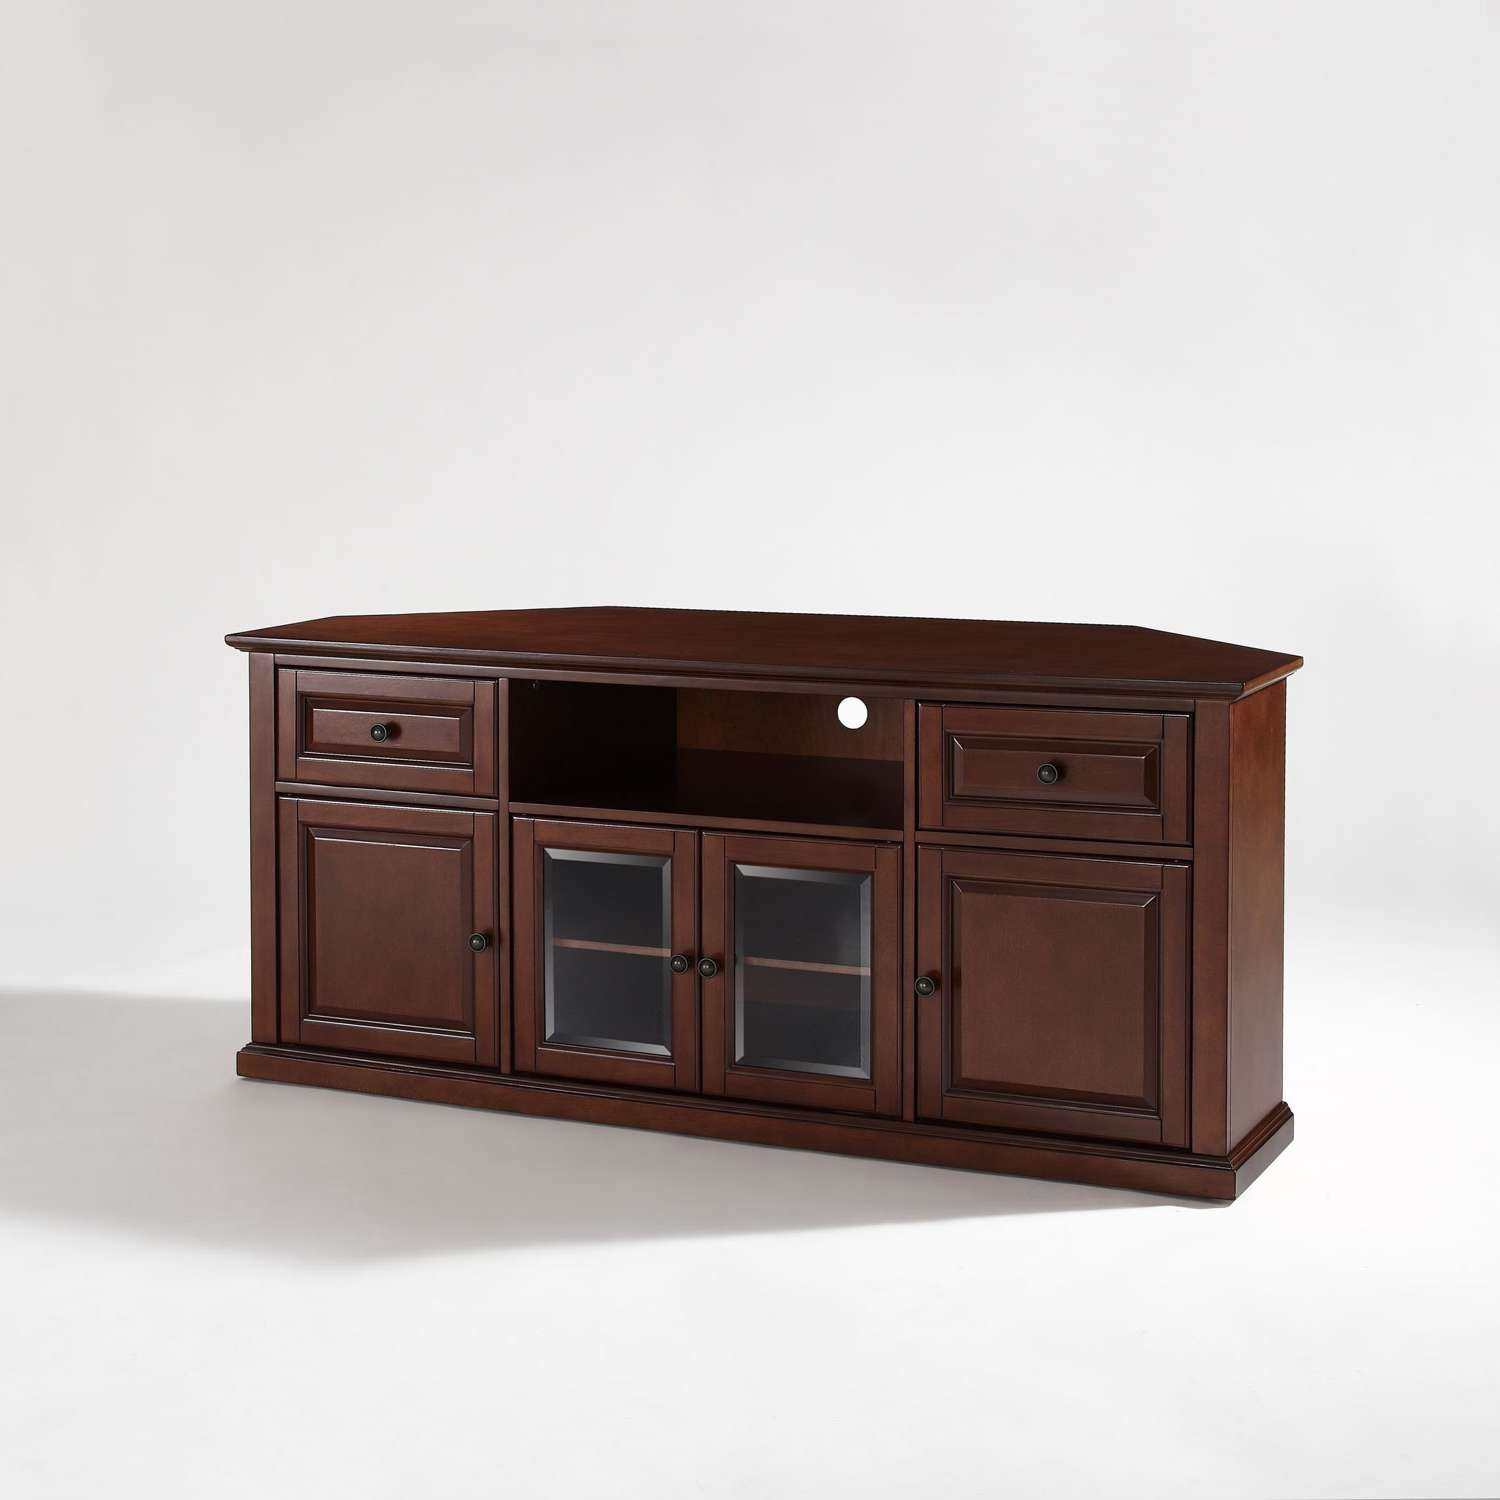 Corner Tv Cabinets Tv Stands And Cabinets | Bellacor For Tv Stands With Rounded Corners (View 10 of 15)